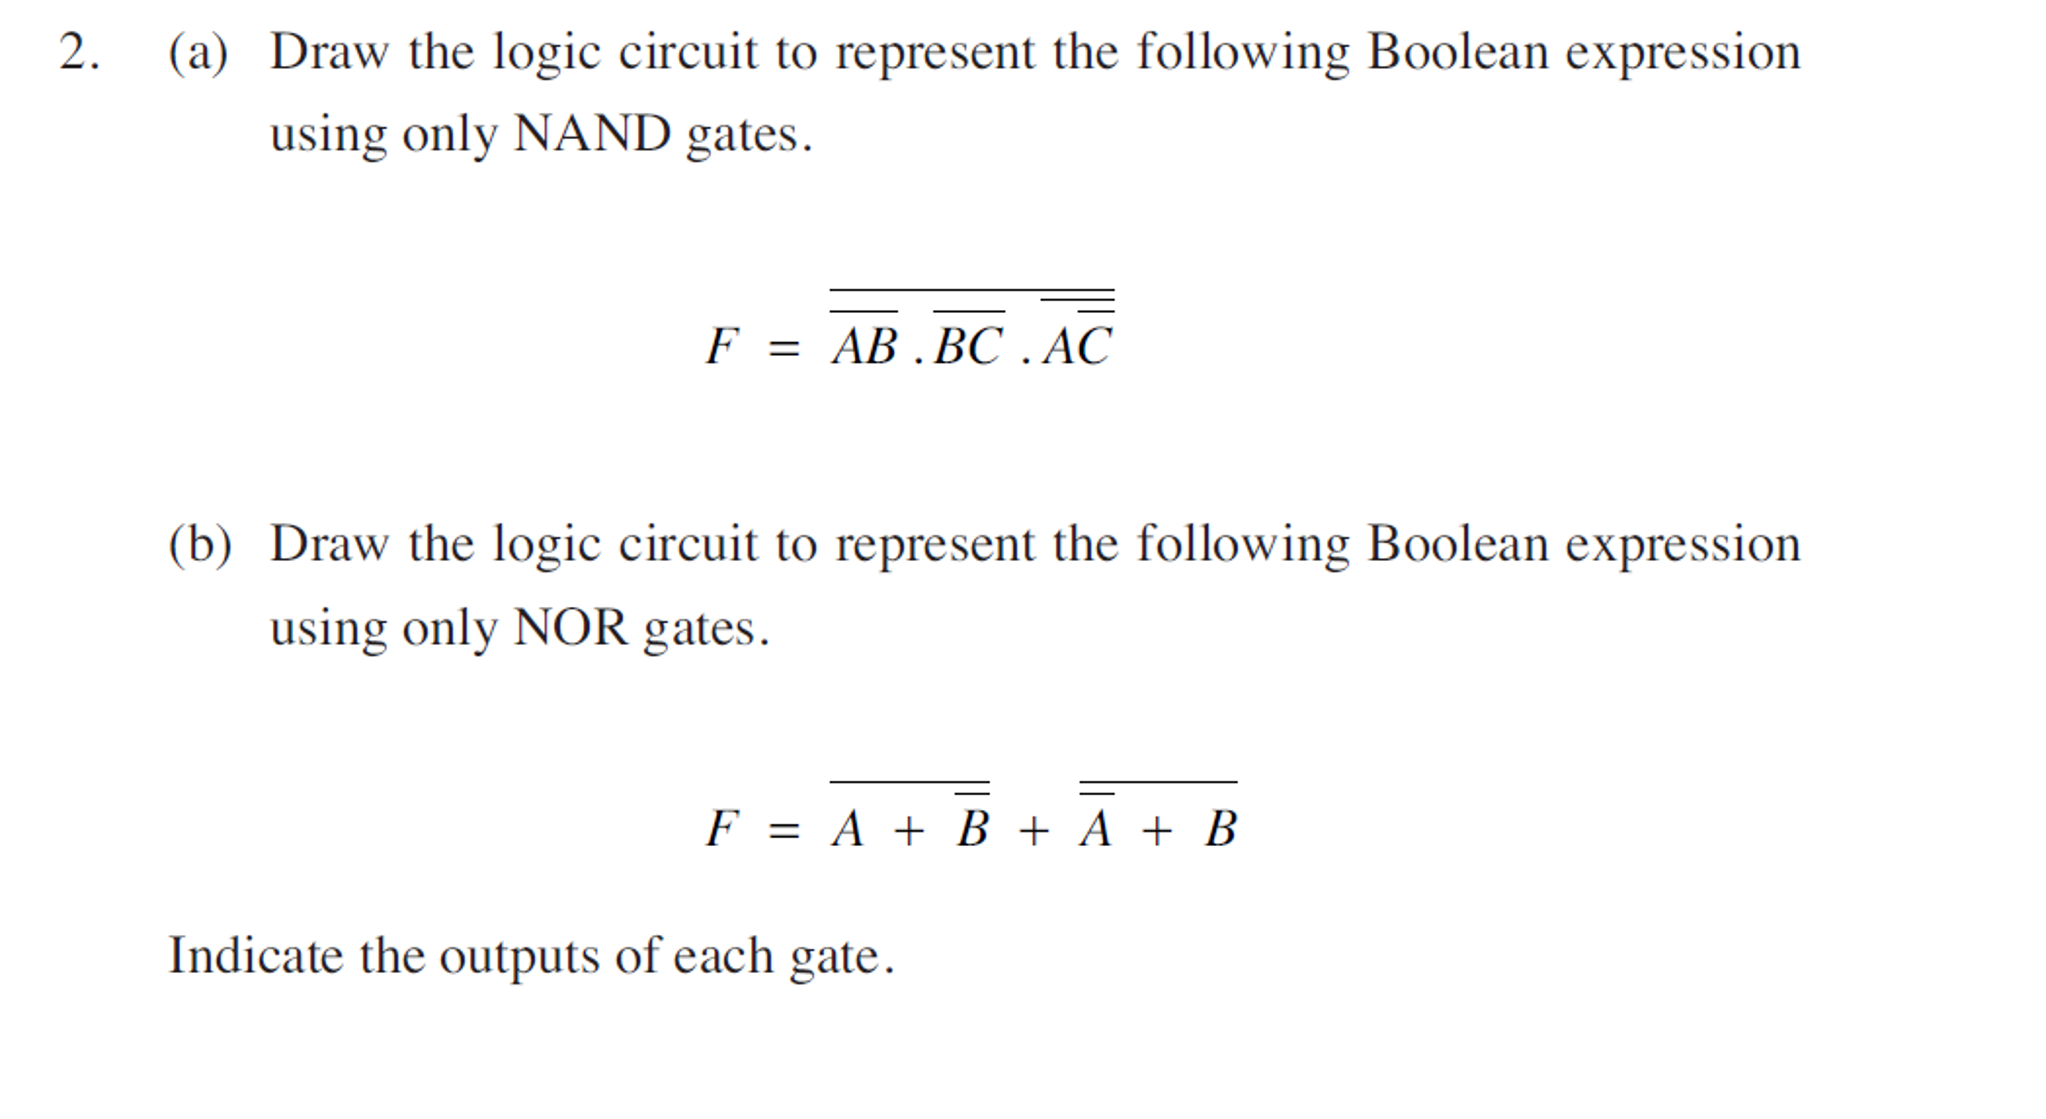 Draw the logic circuit to represent the following